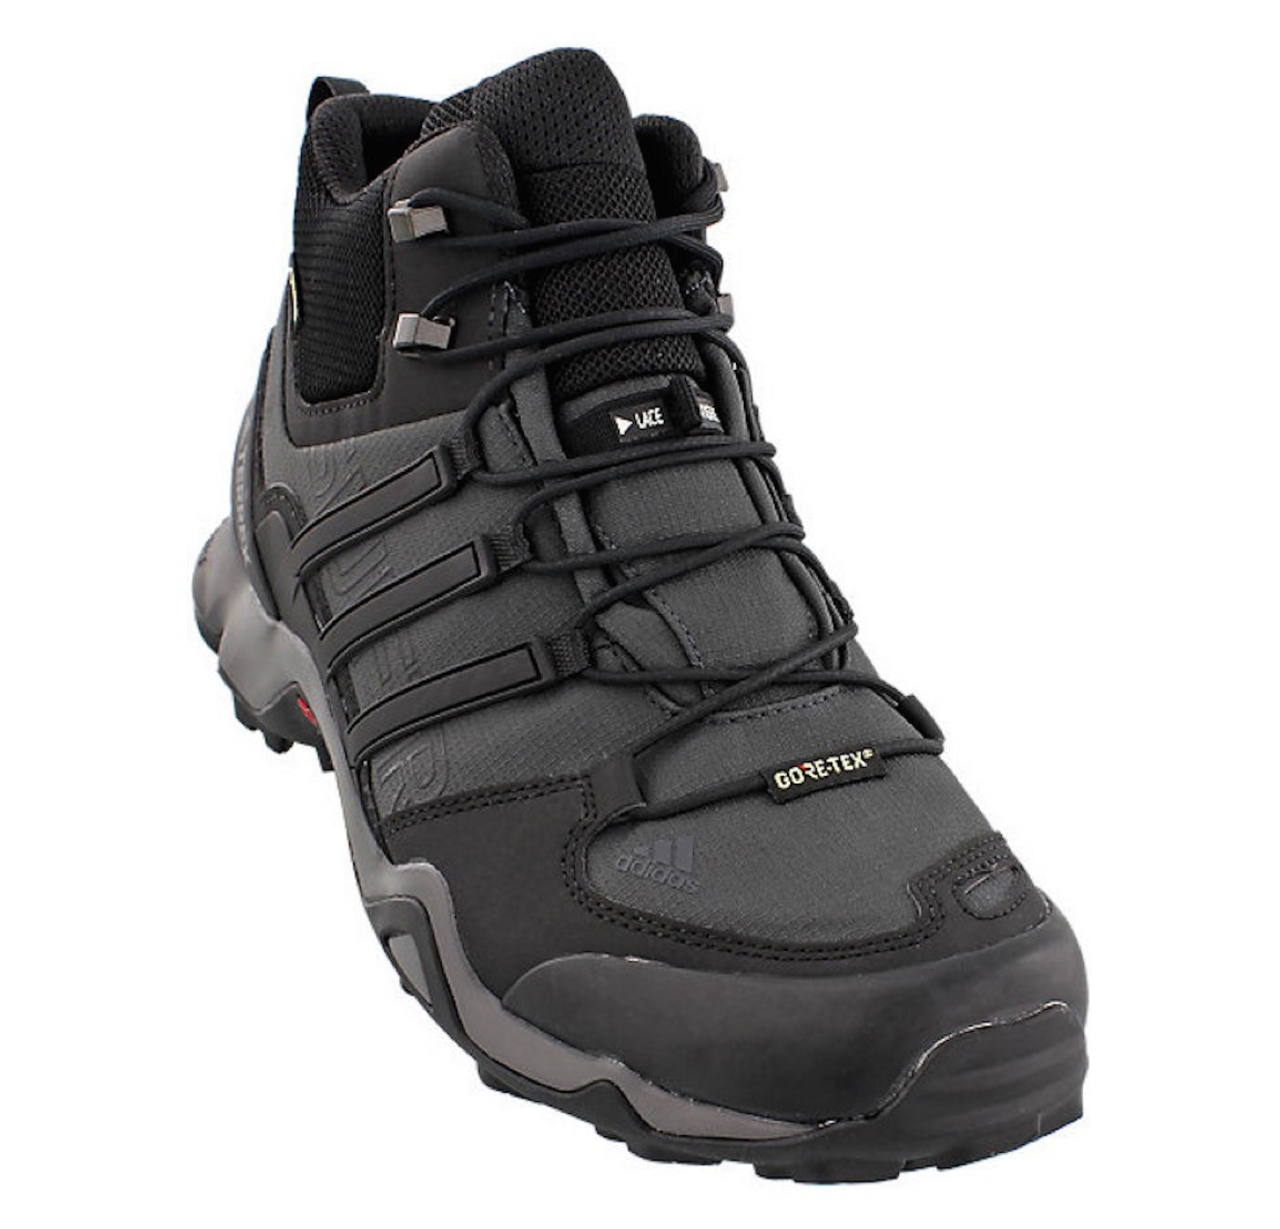 new specials price reduced new arrivals Adidas BB4639 Men's Outdoor Terrex Swift R Mid GTX Hiking Shoes